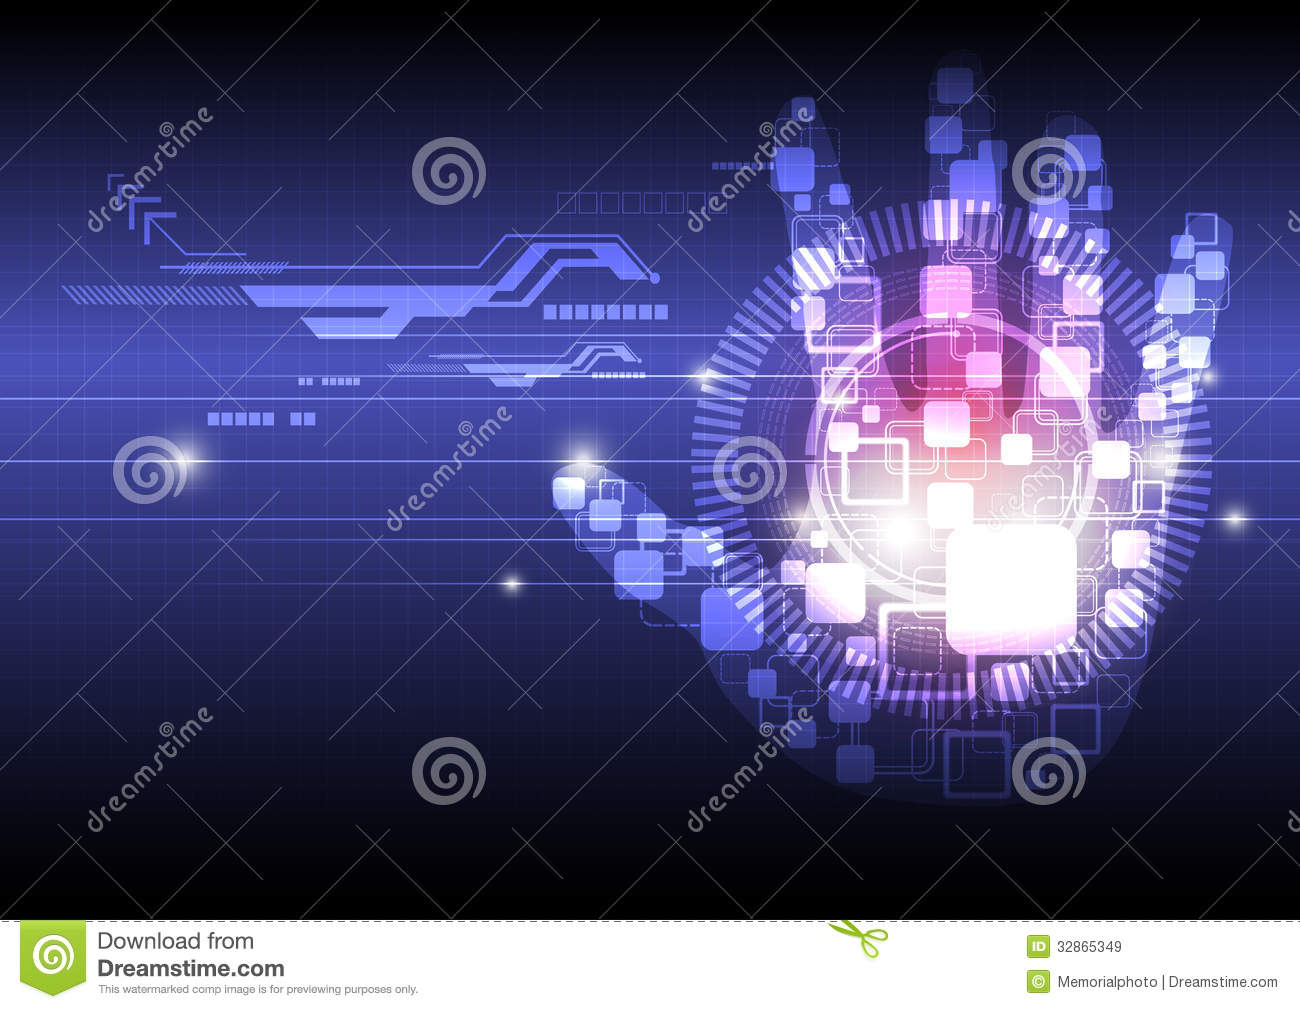 Digital hand technology background stock vector for Design teich